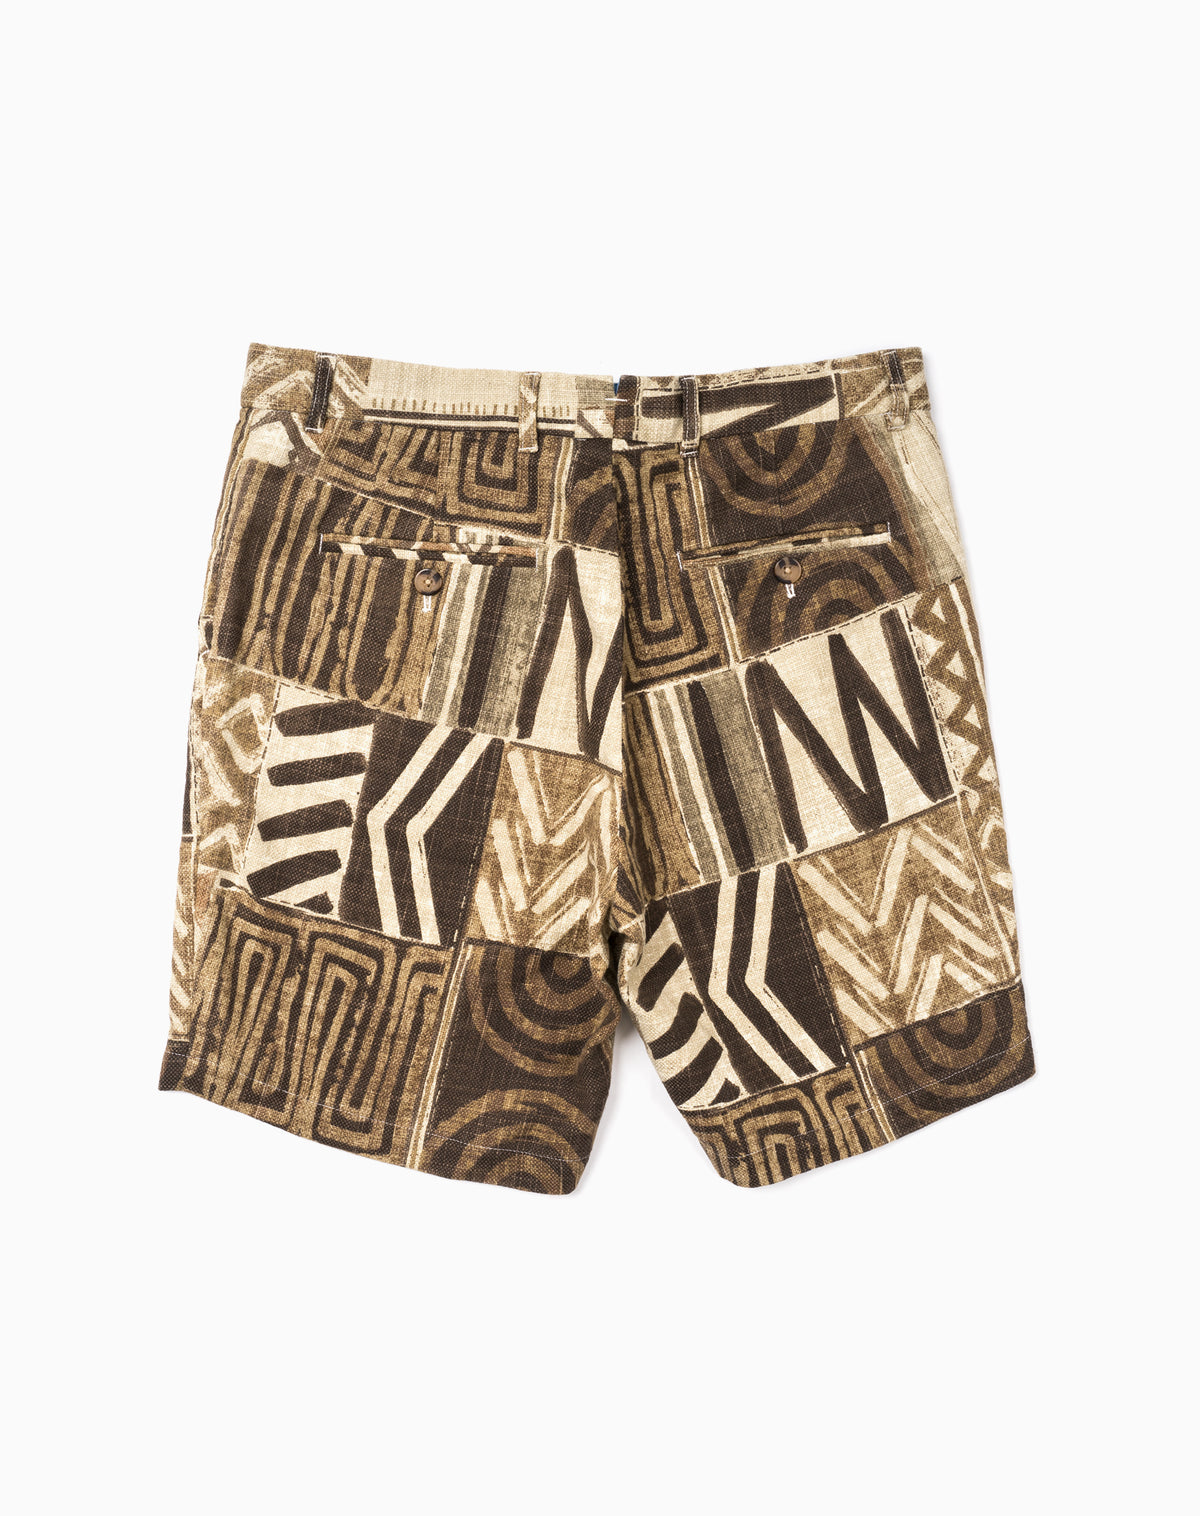 Printed Short in Tribal Patchwork